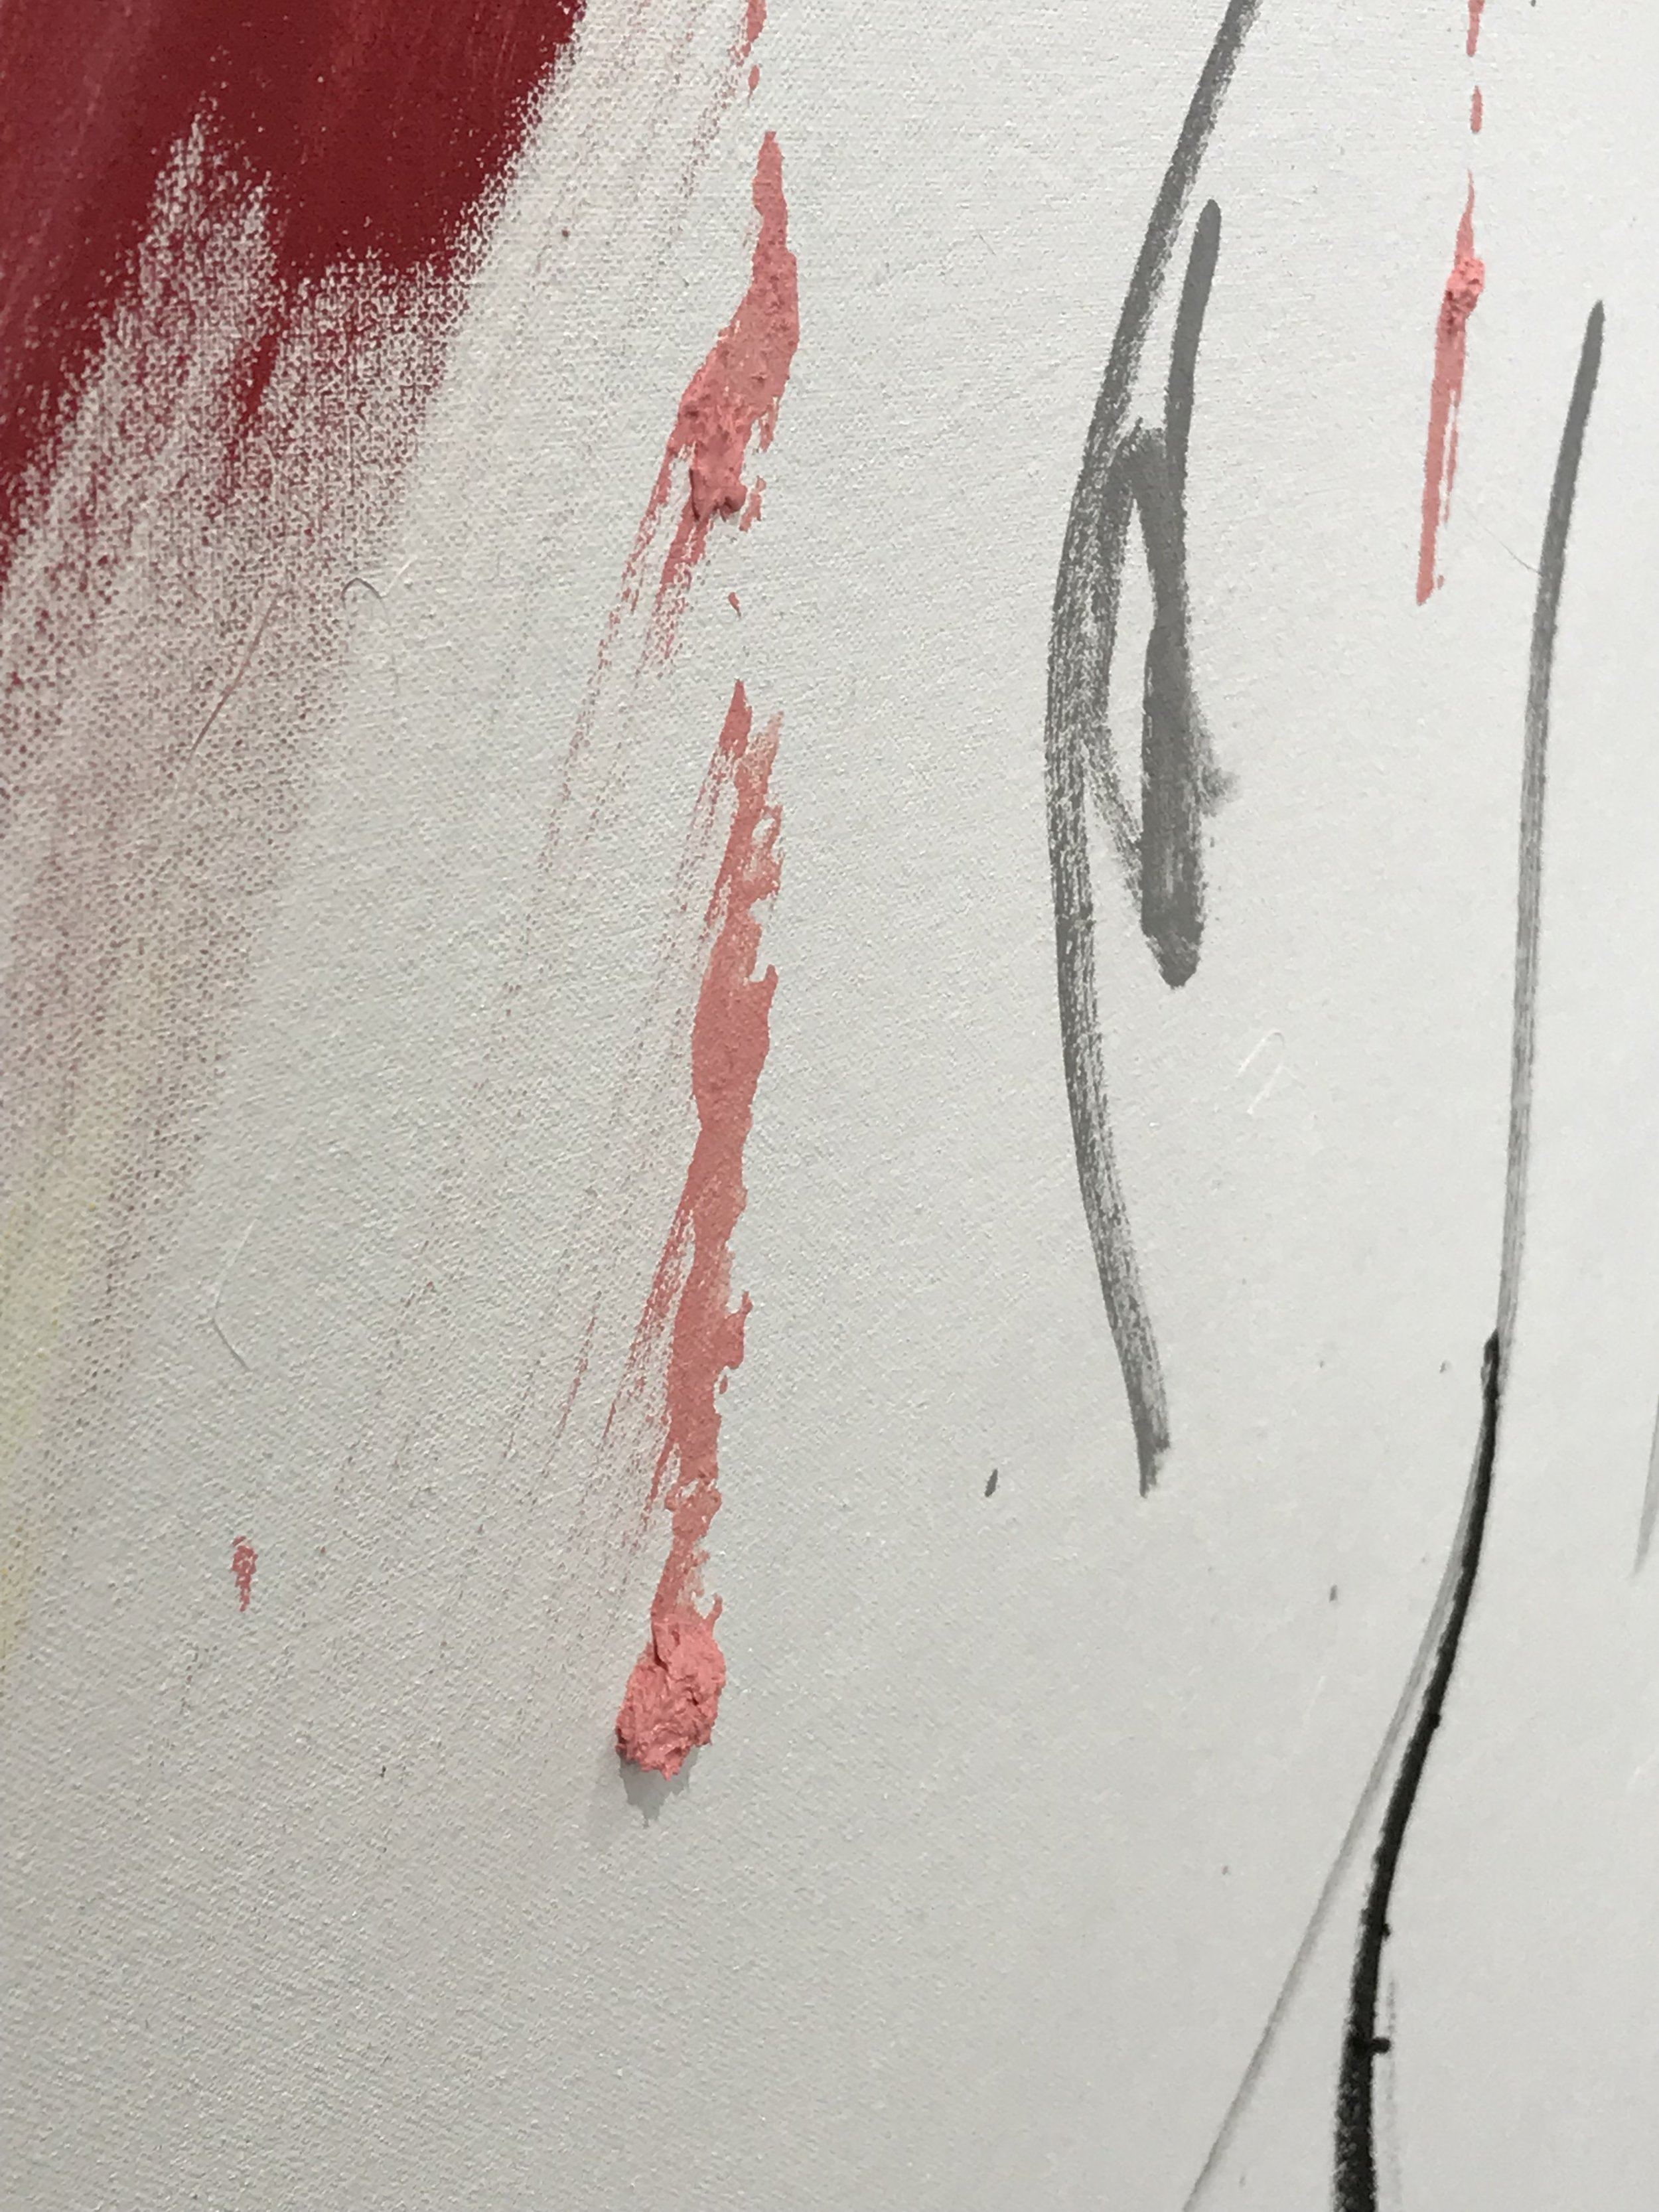 clumps of paint left on a canvas